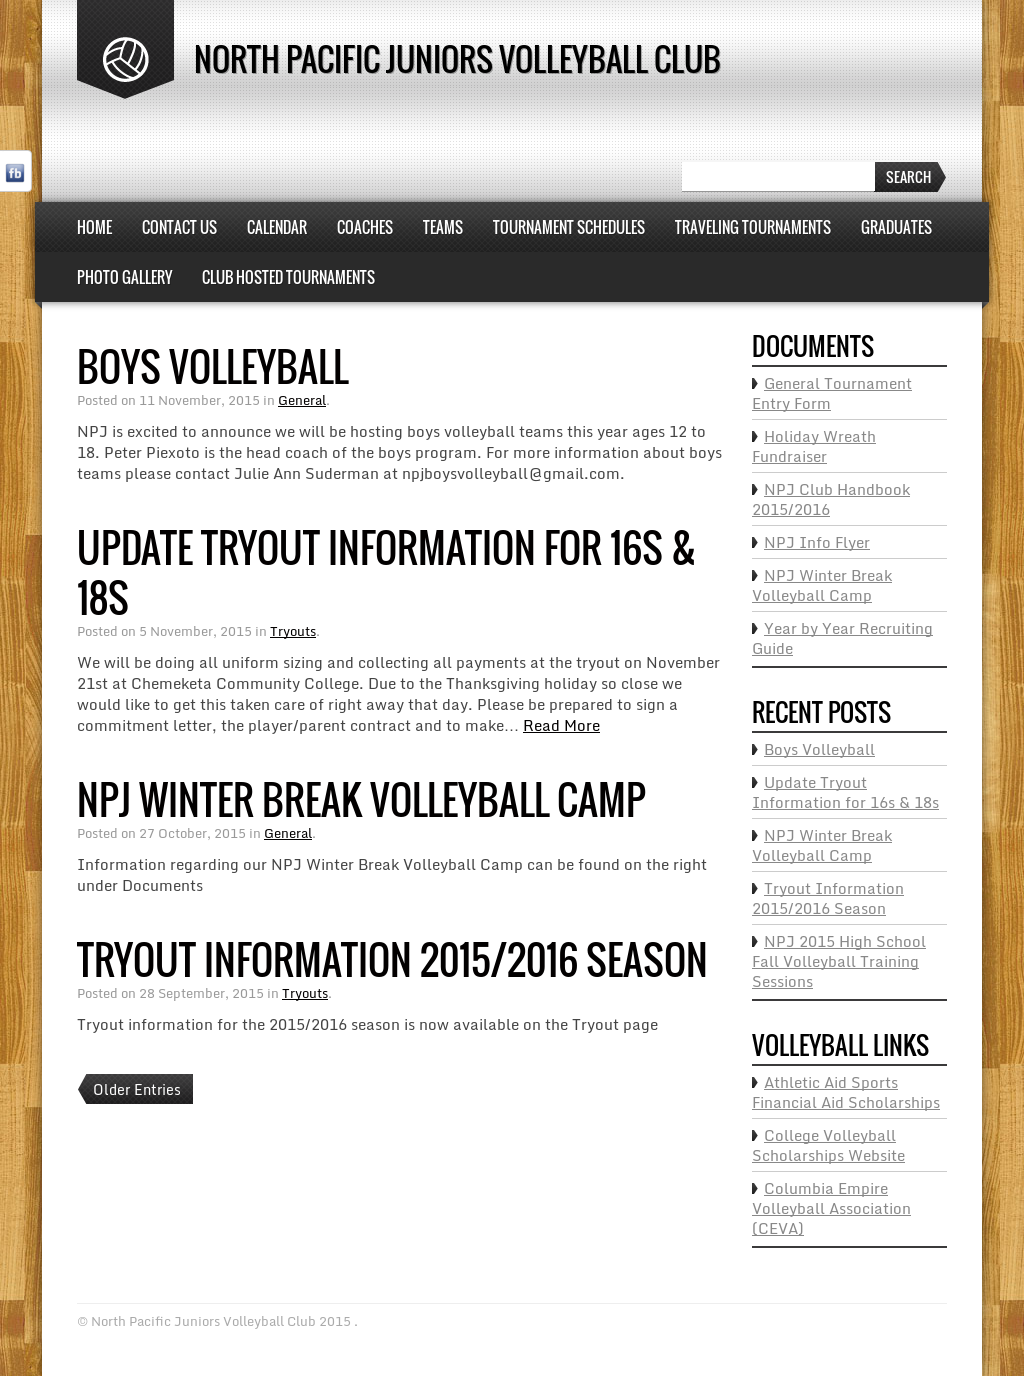 North Pacific Juniors Volleyball Club Competitors, Revenue and